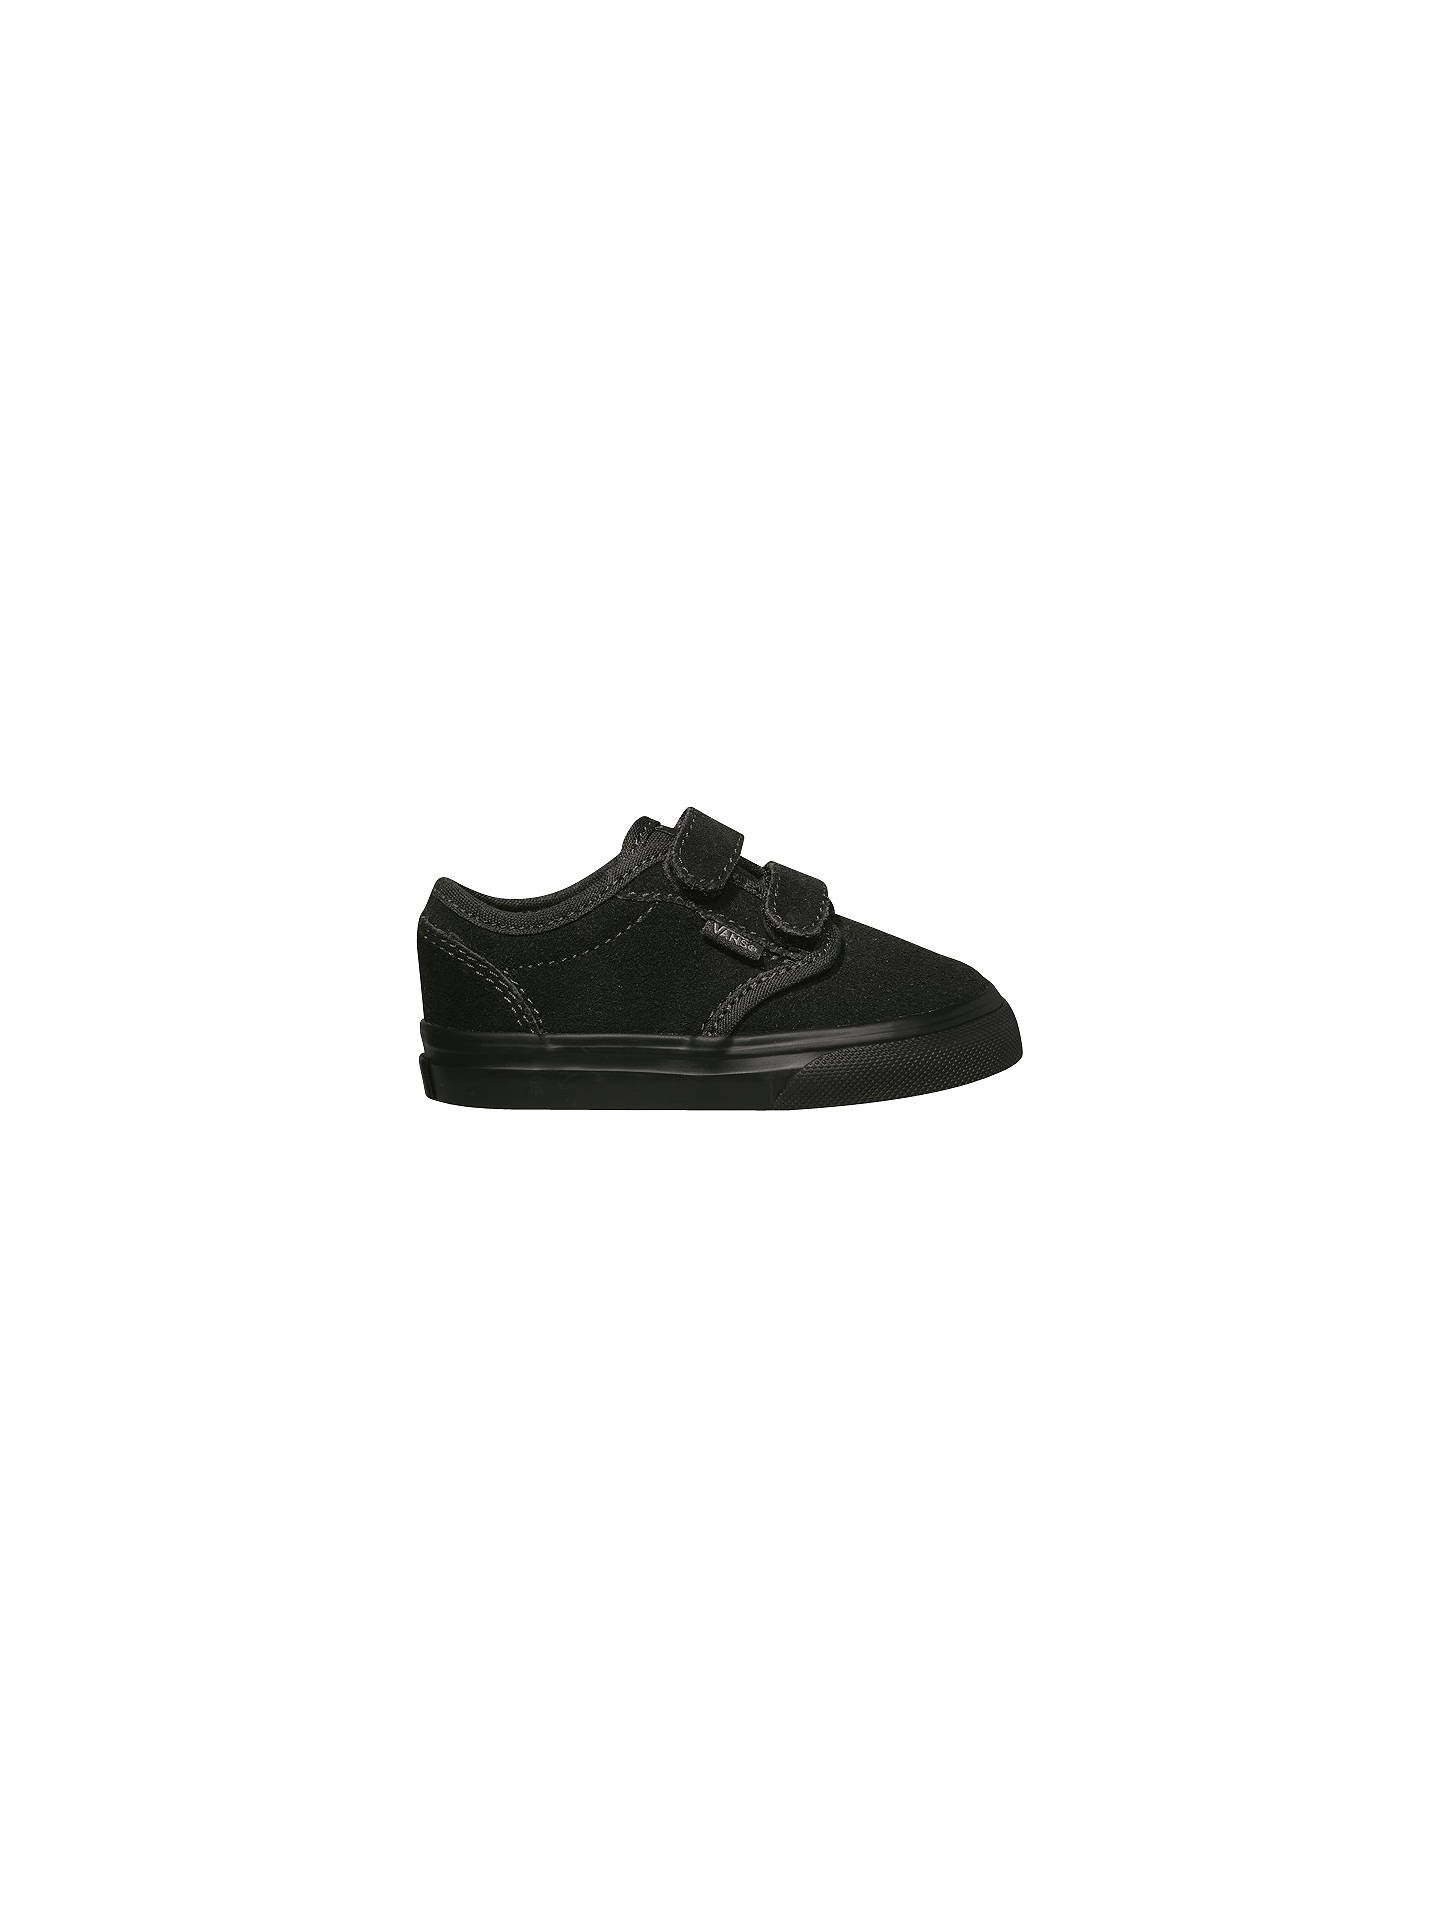 64e8a4a9da BuyVans Atwood Children s Suede Trainers